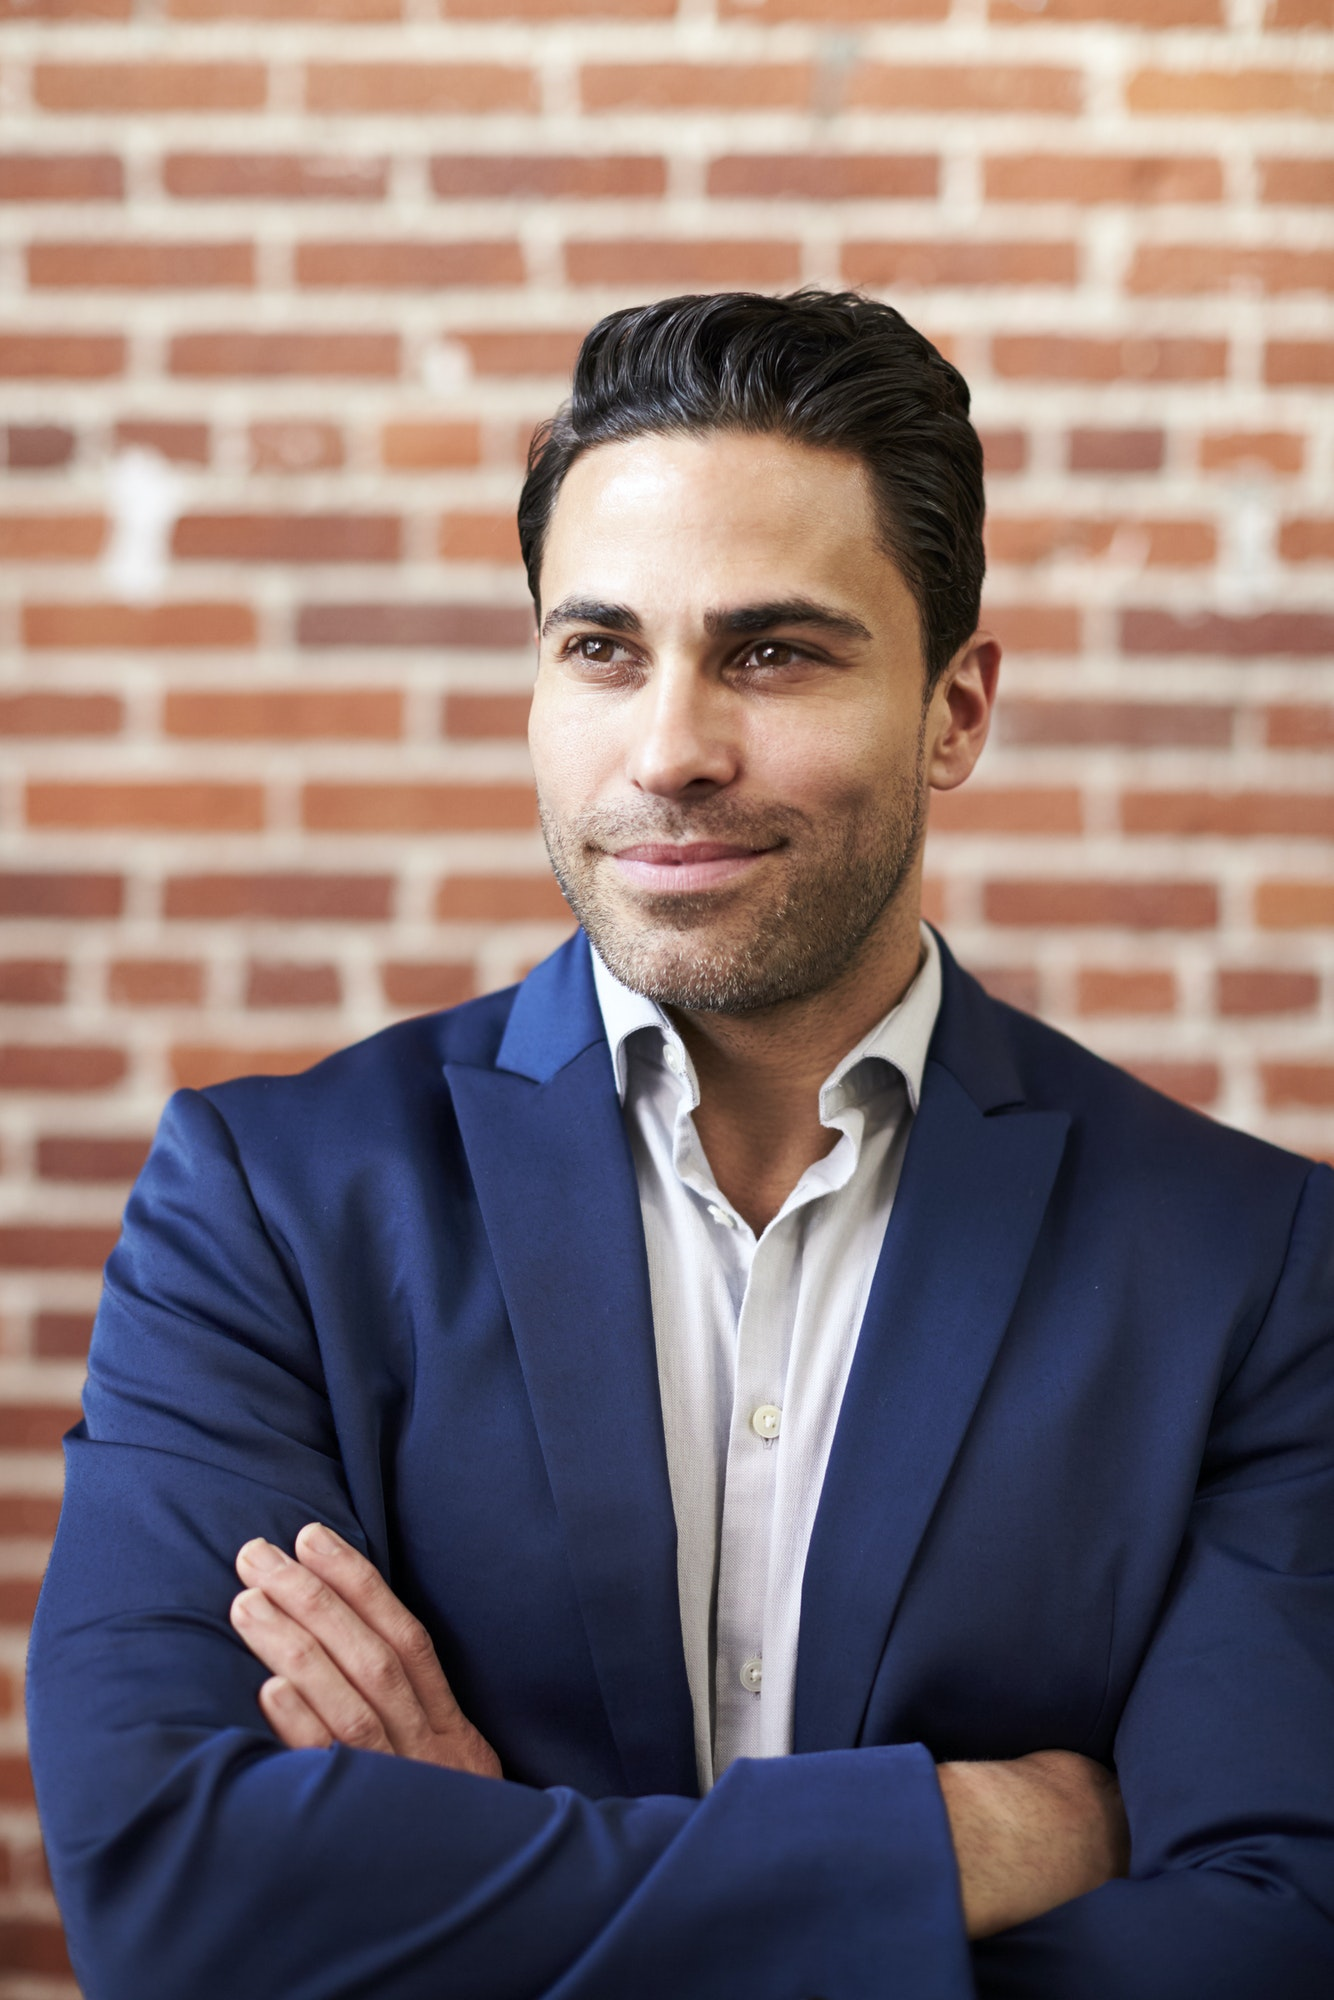 Smiling Mature Businessman Standing Against Brick Wall In Modern Office